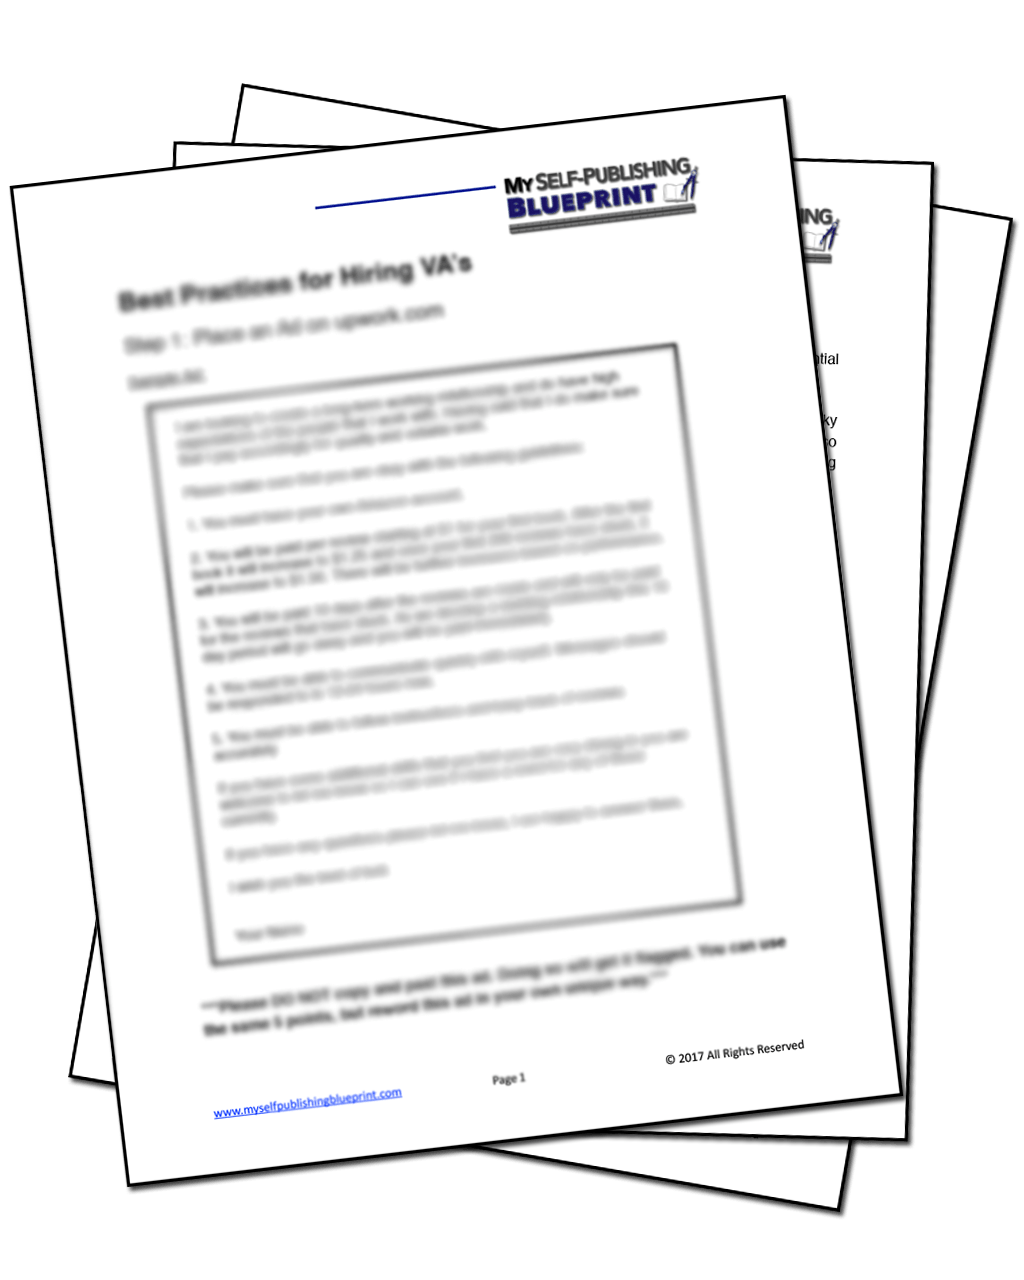 My self publishing blueprint you get my self publishing blueprints best practices downloadable pdfs to help guide you along the way malvernweather Gallery